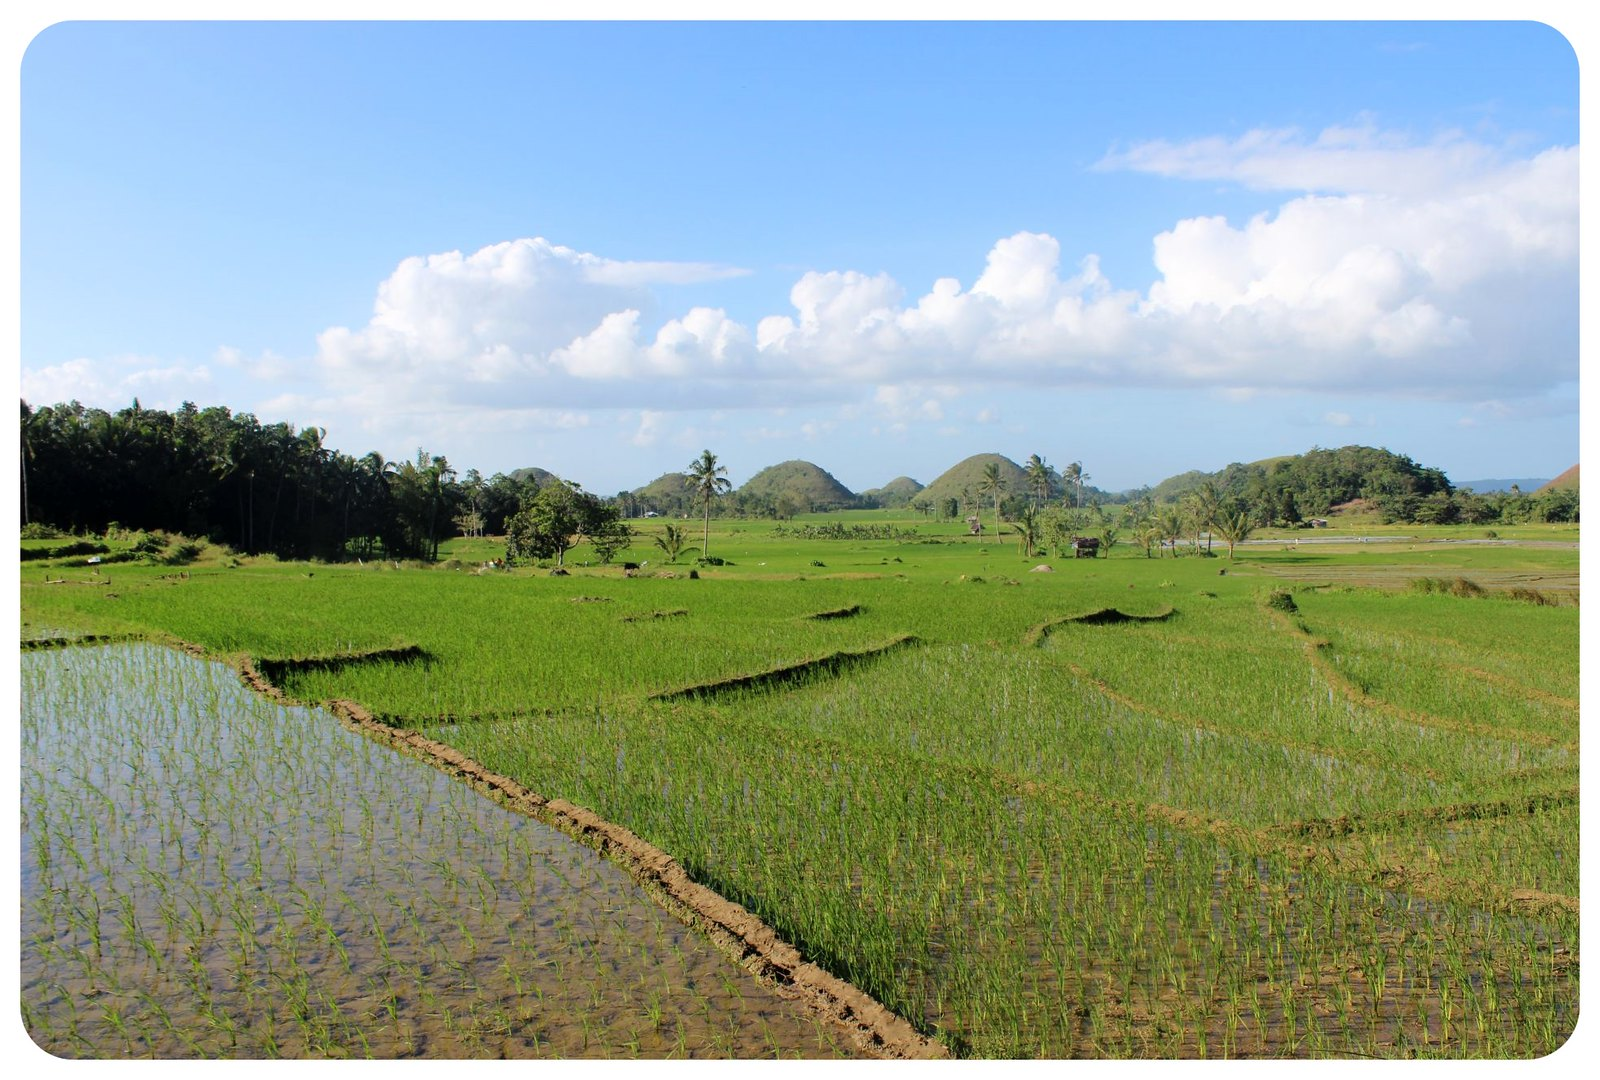 bohol rice fields